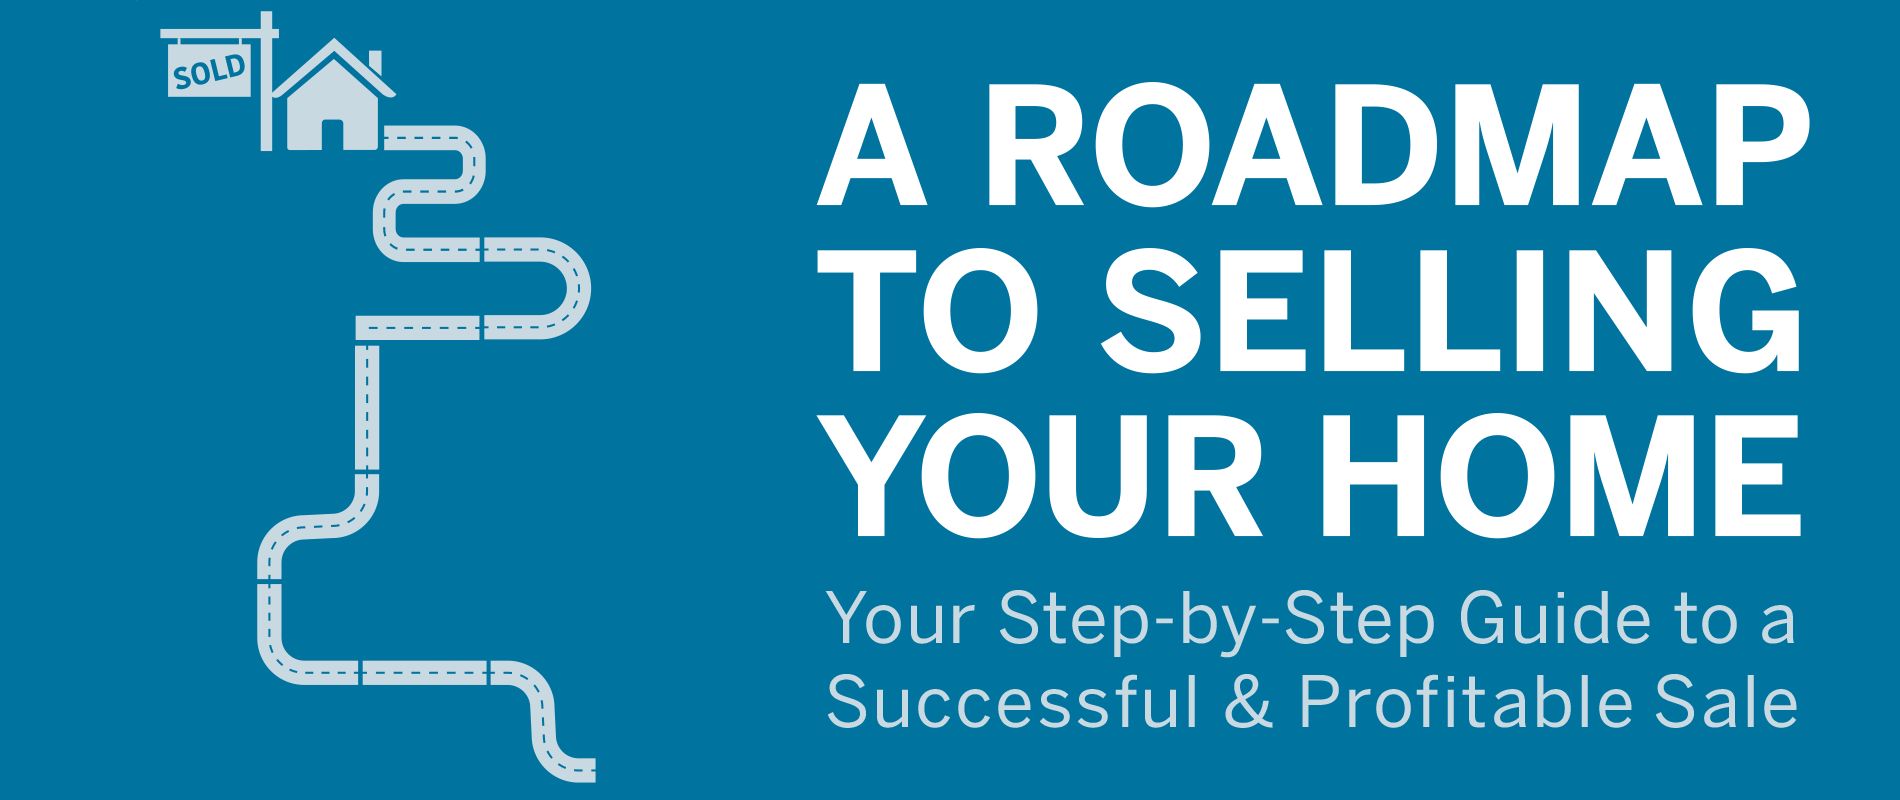 your-step-by-step-guide-to-a-successful-profitable-sale